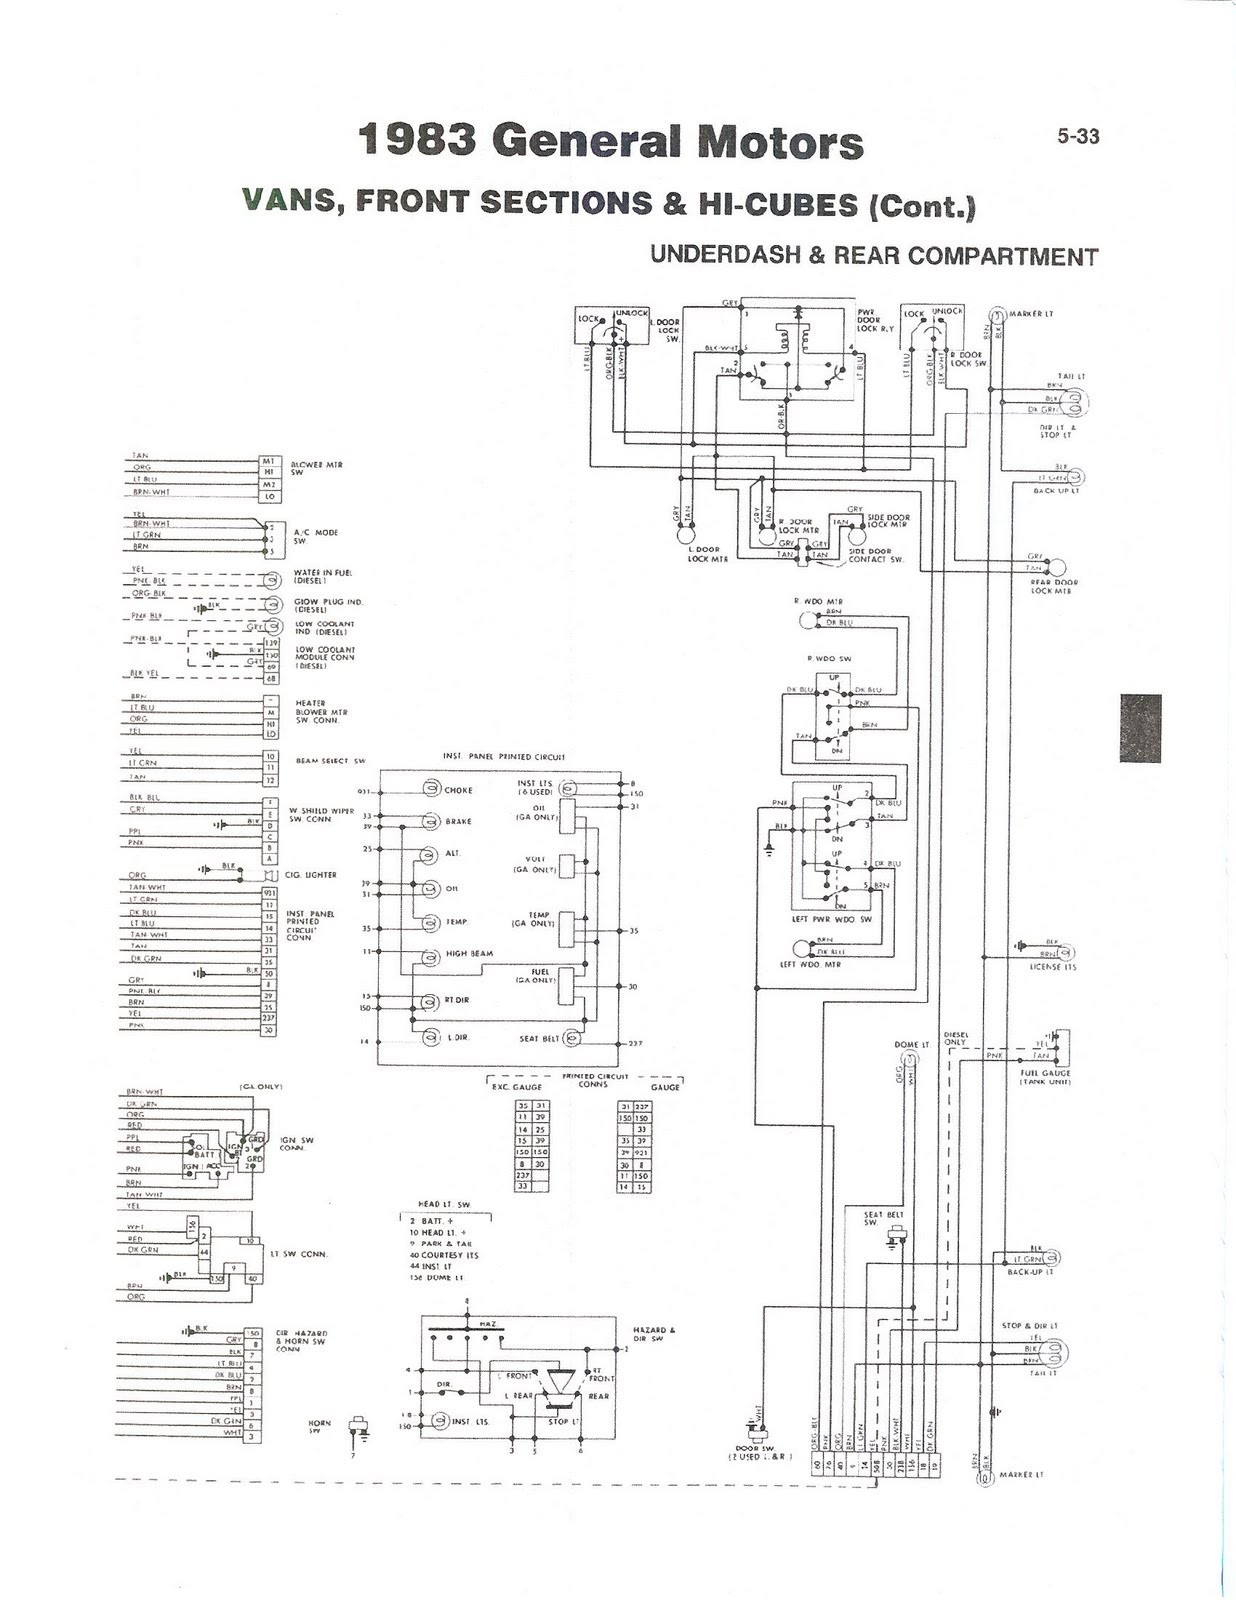 1987 Bounder Wiring Diagram - Wiring Diagram List on gmc motorhome wiring diagram, ford motorhome wiring diagram, dodge motorhome wiring diagram, monaco motorhome wiring diagram, chevy astro van wiring diagram, fleetwood bounder motorhome wiring diagram,